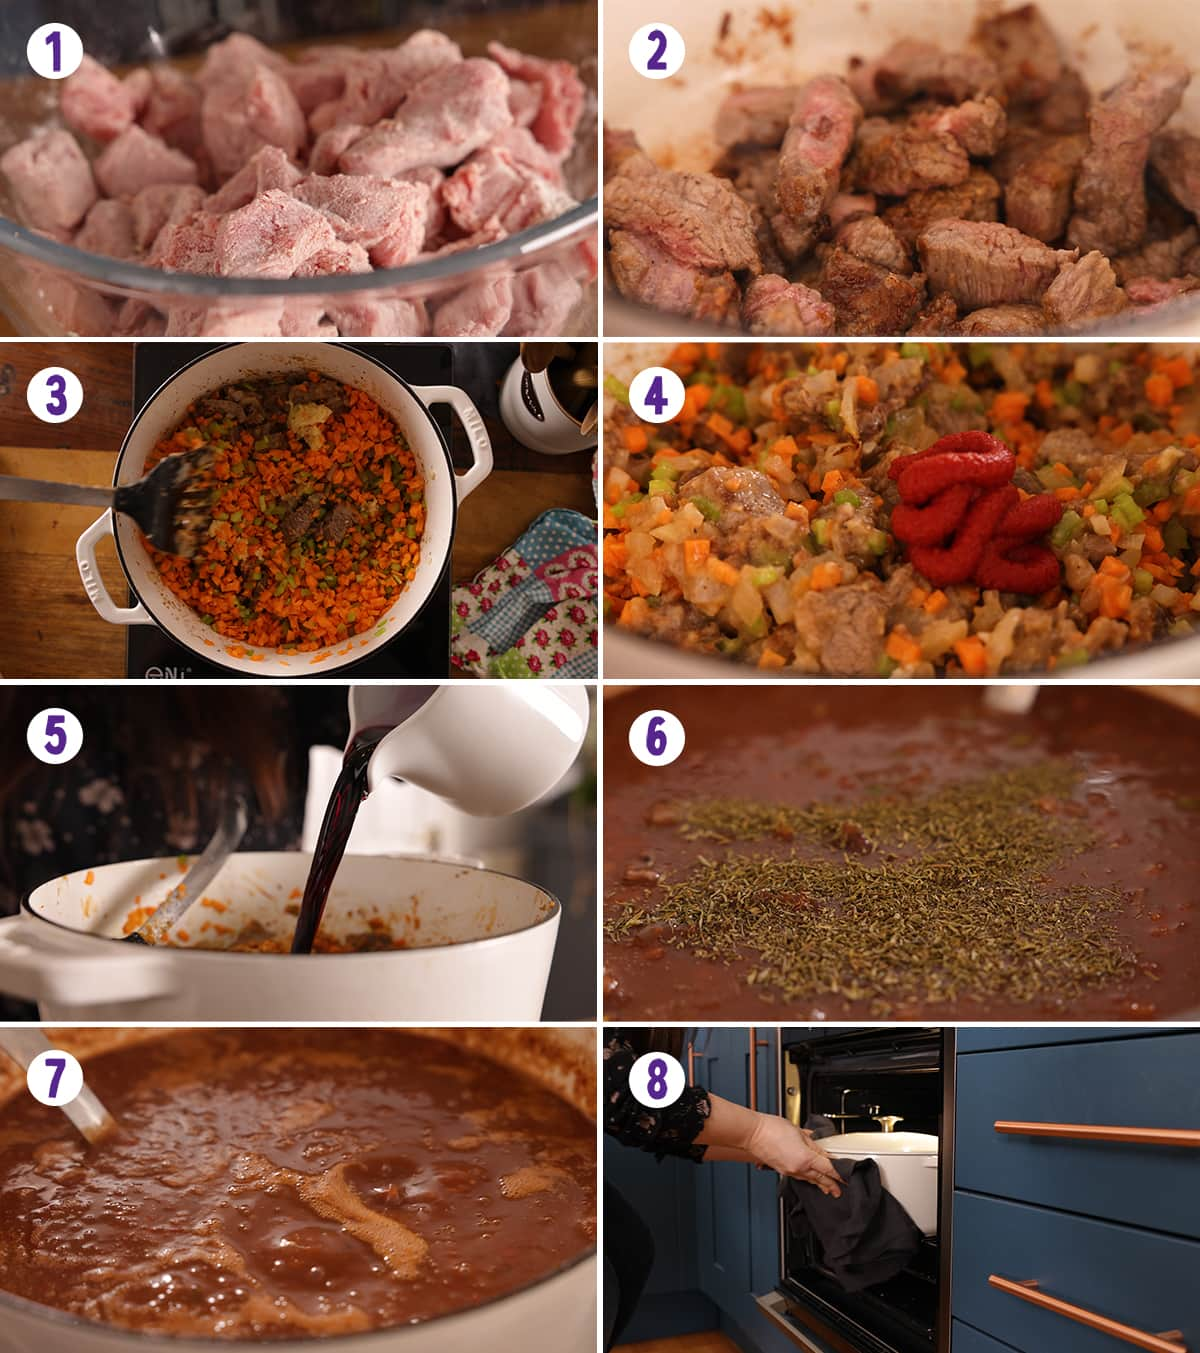 8 image collage showing how to make beef ragu